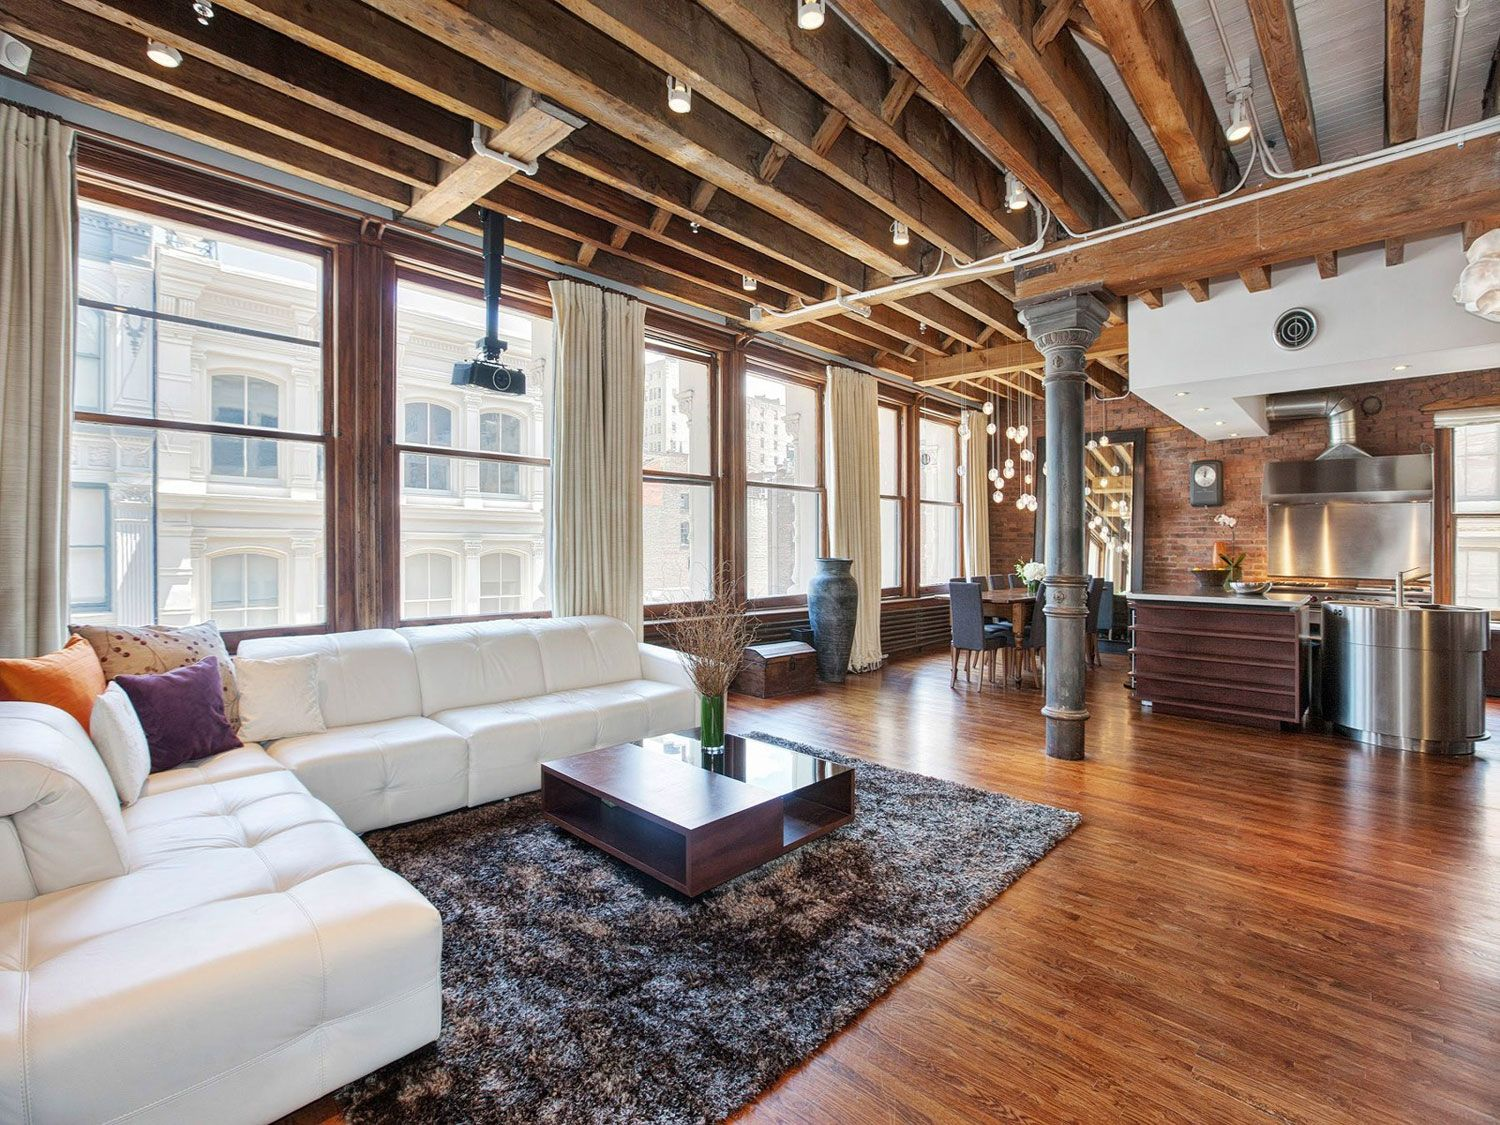 Open Plan Apartment With Exposed Wood Beams And Iron